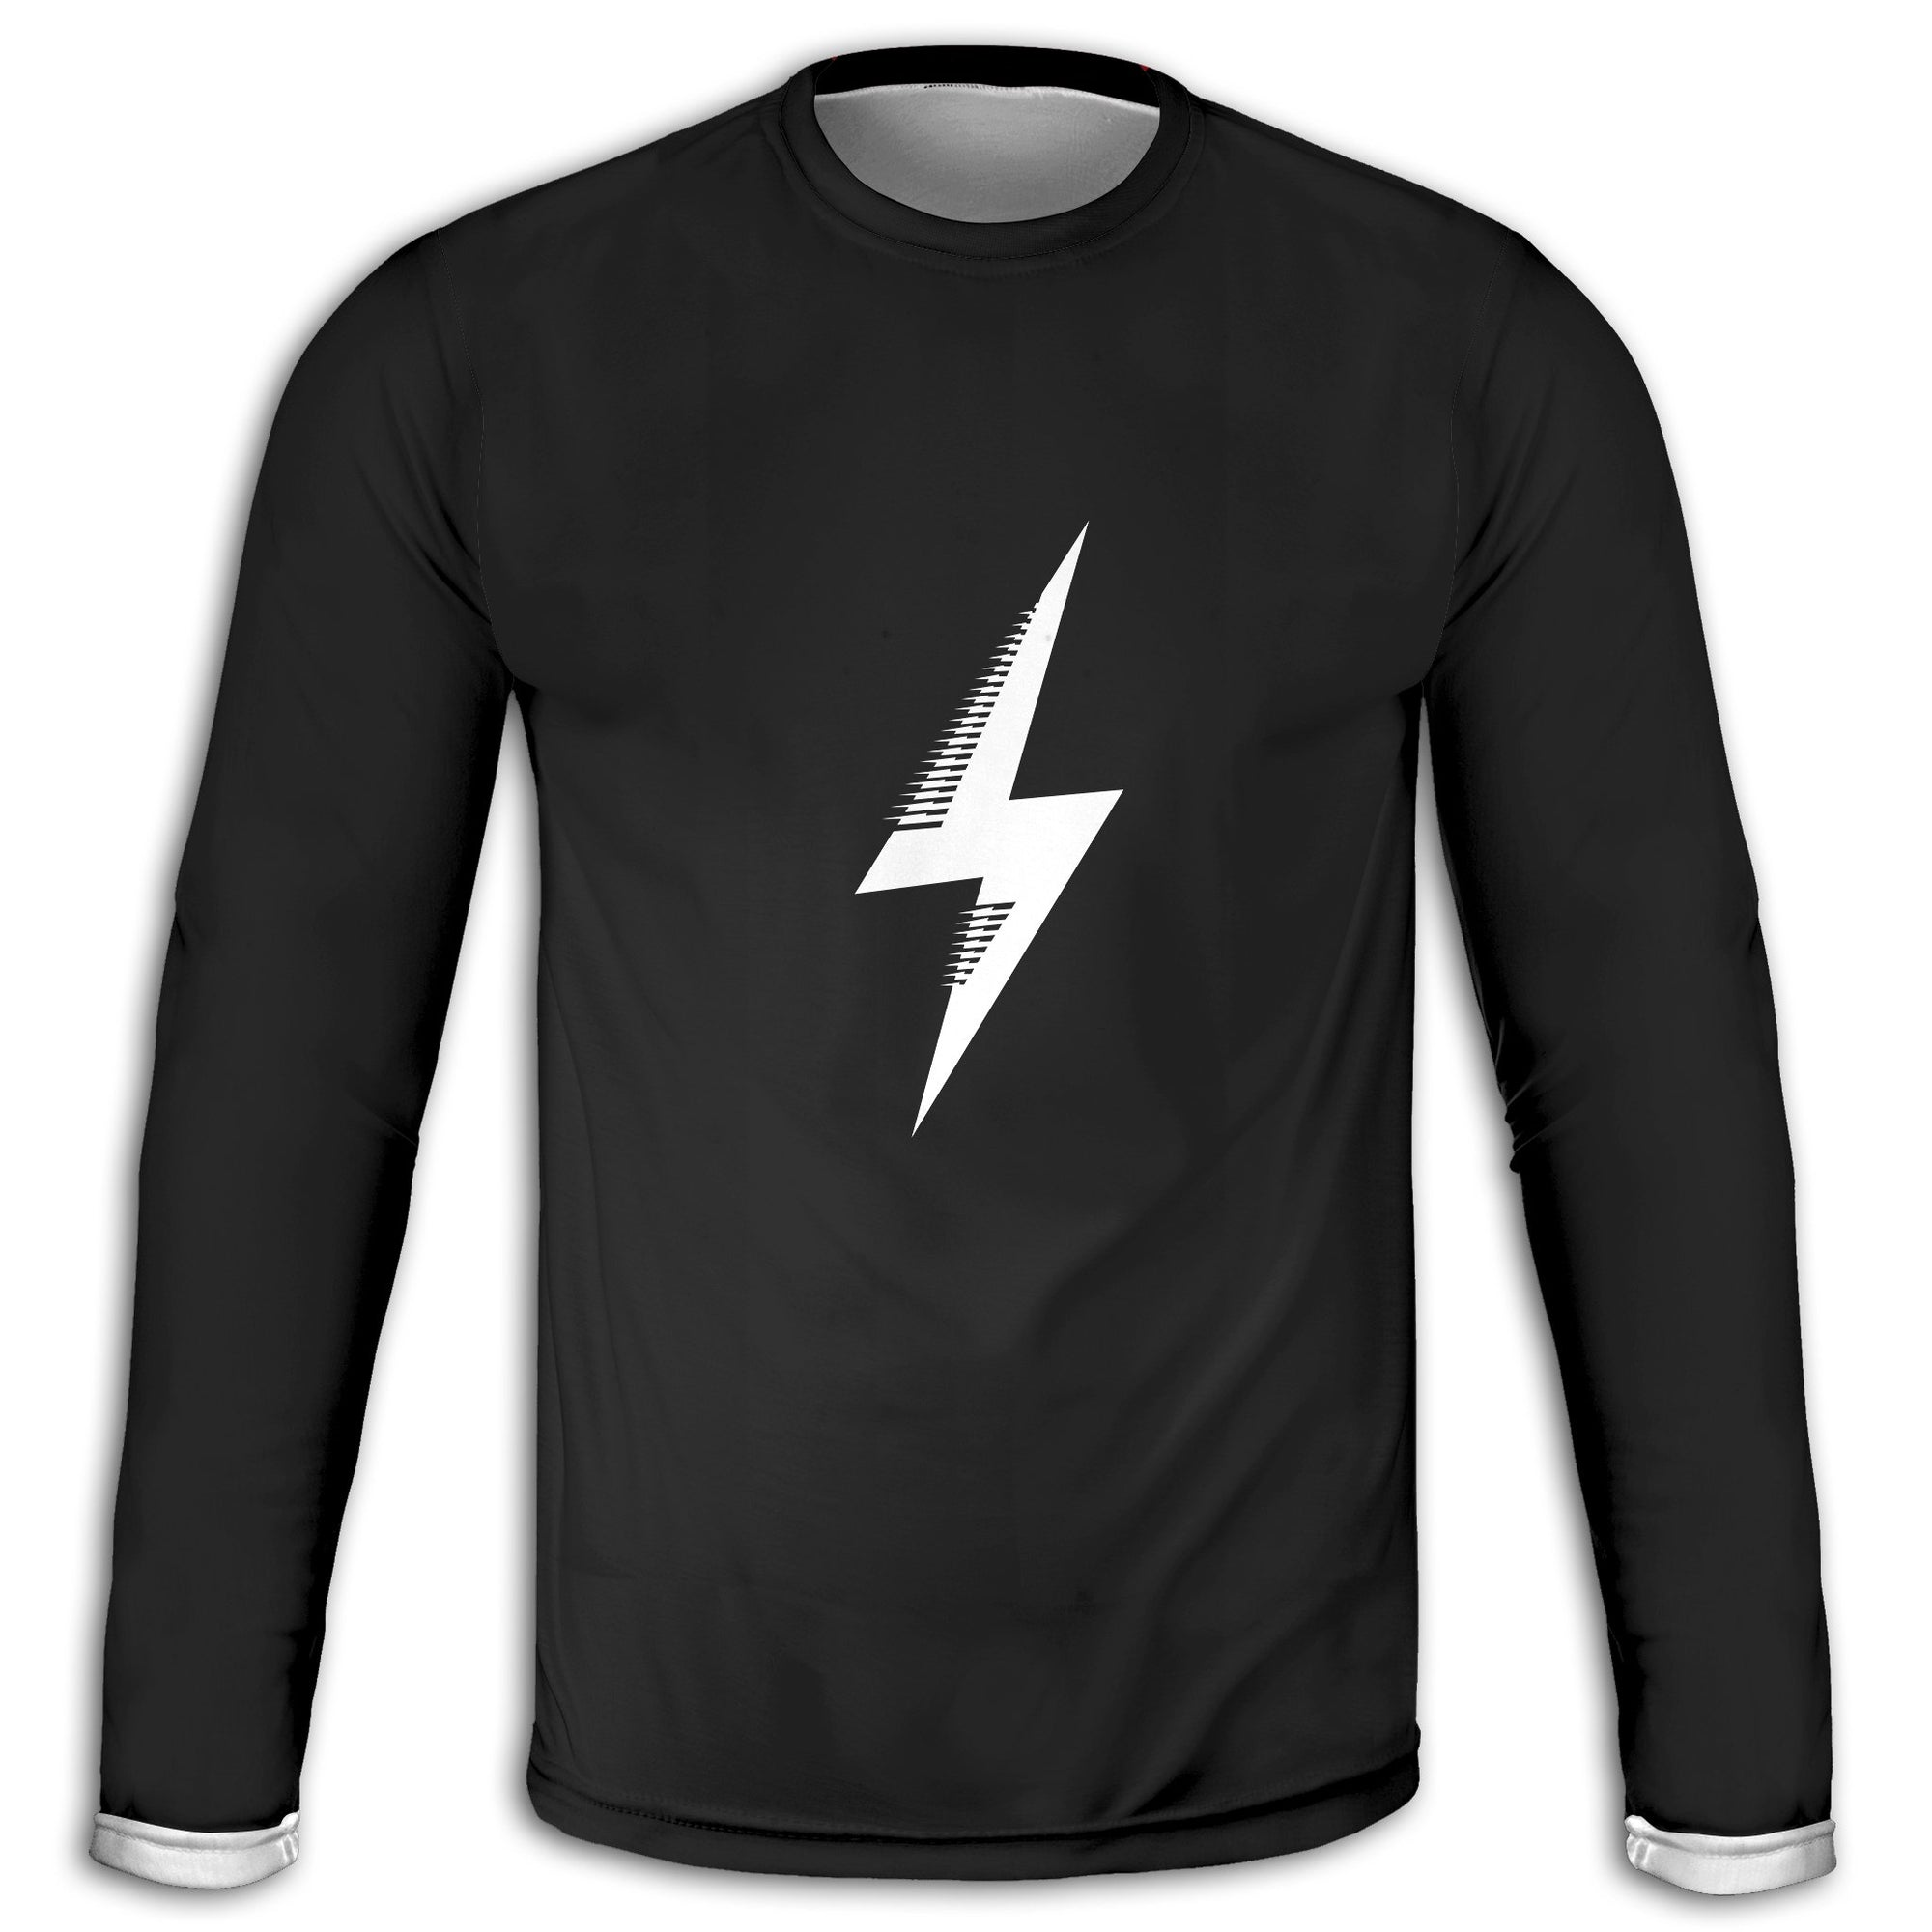 Blackout Long Sleeve Tee | flashgordonshop.com